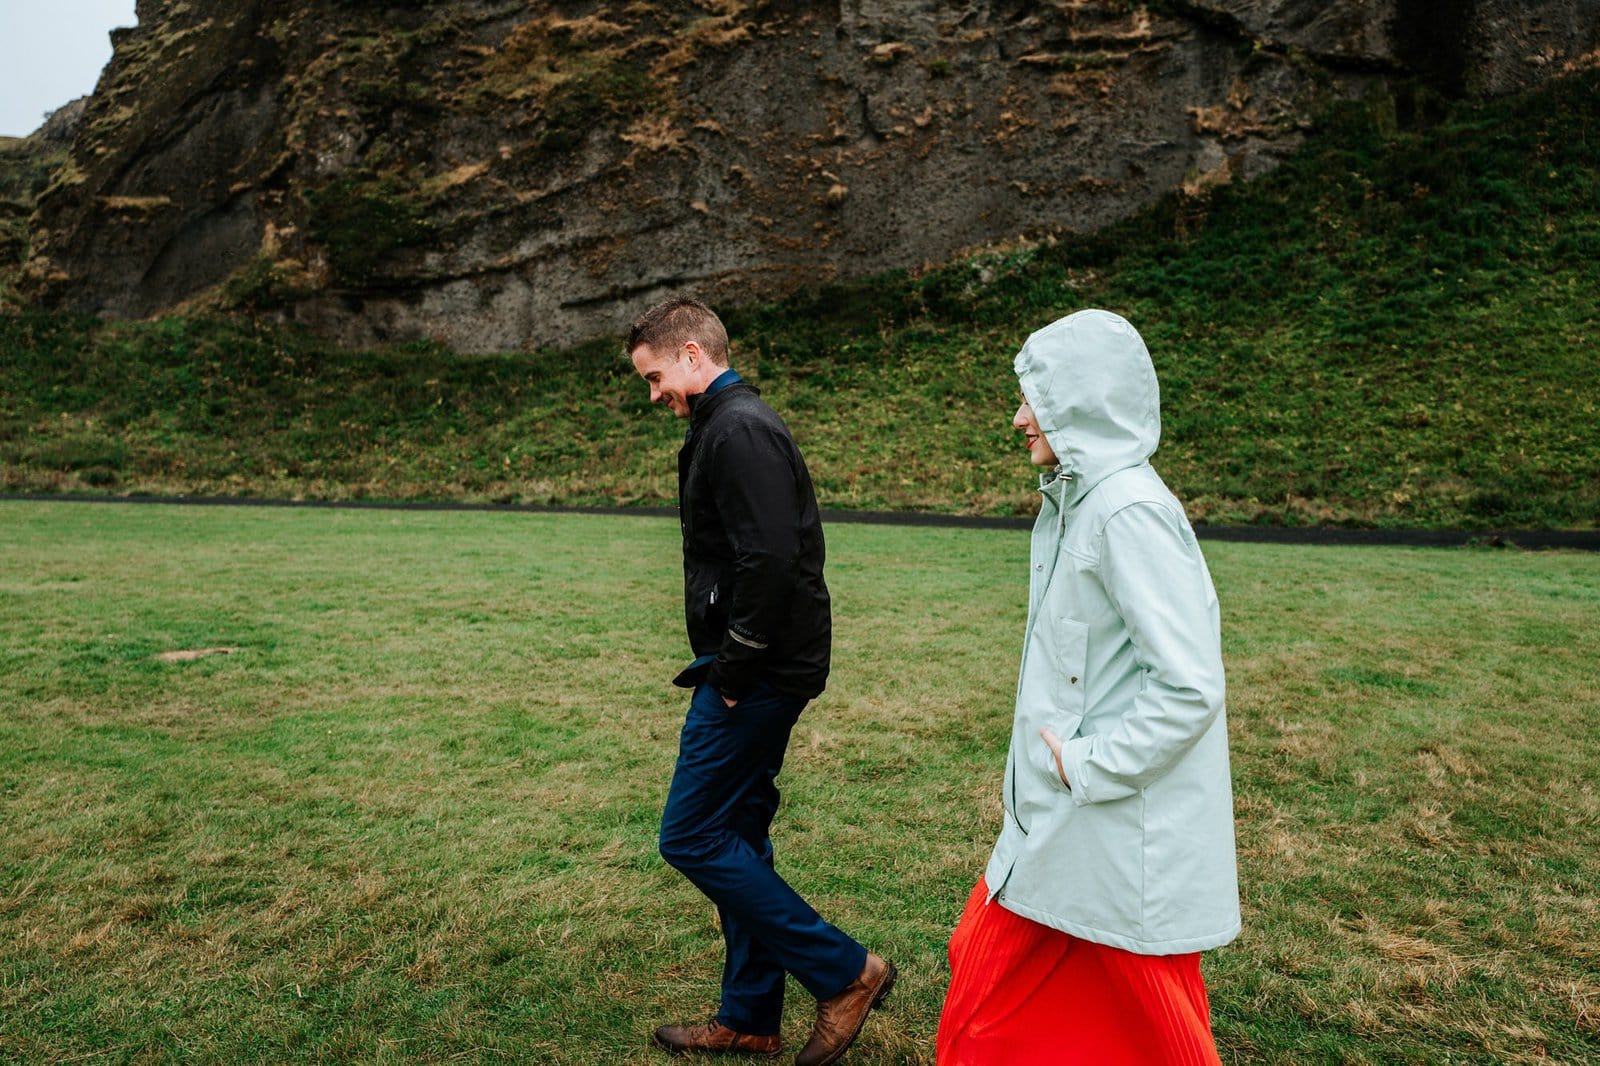 Fun moment in Iceland for wedding session.